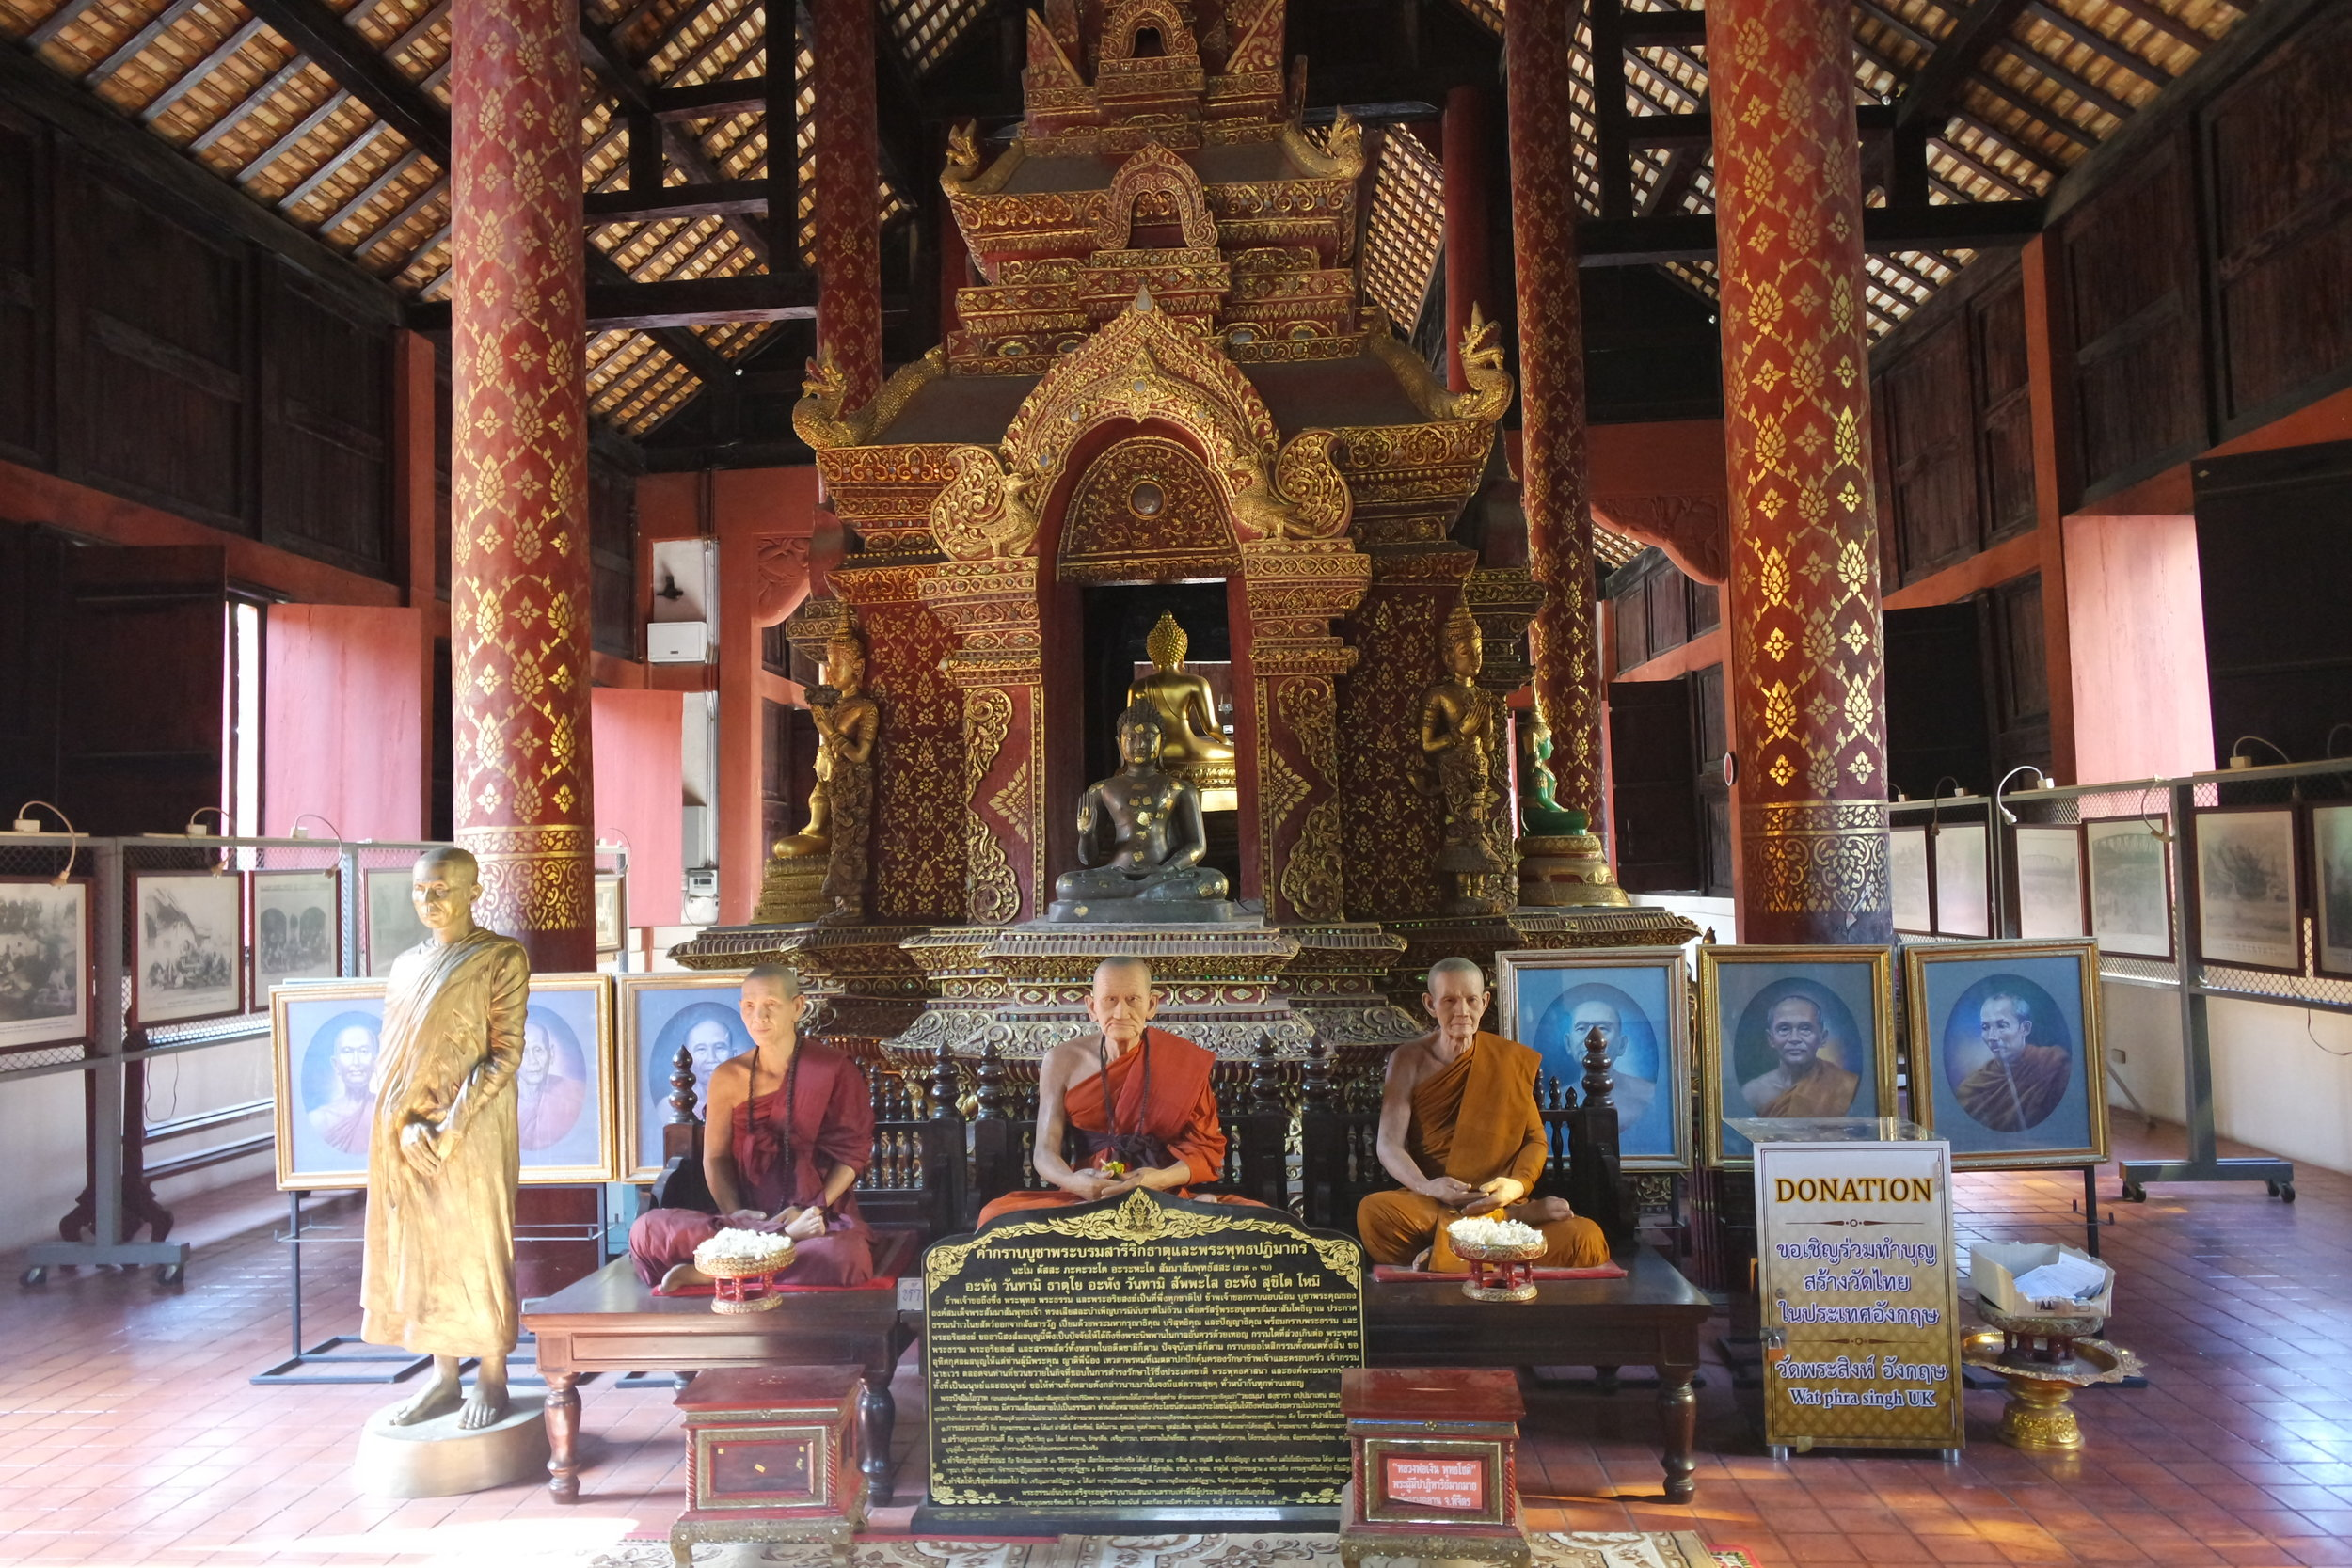 The 700 or so monks at the wat would have been ordained in the ubosot